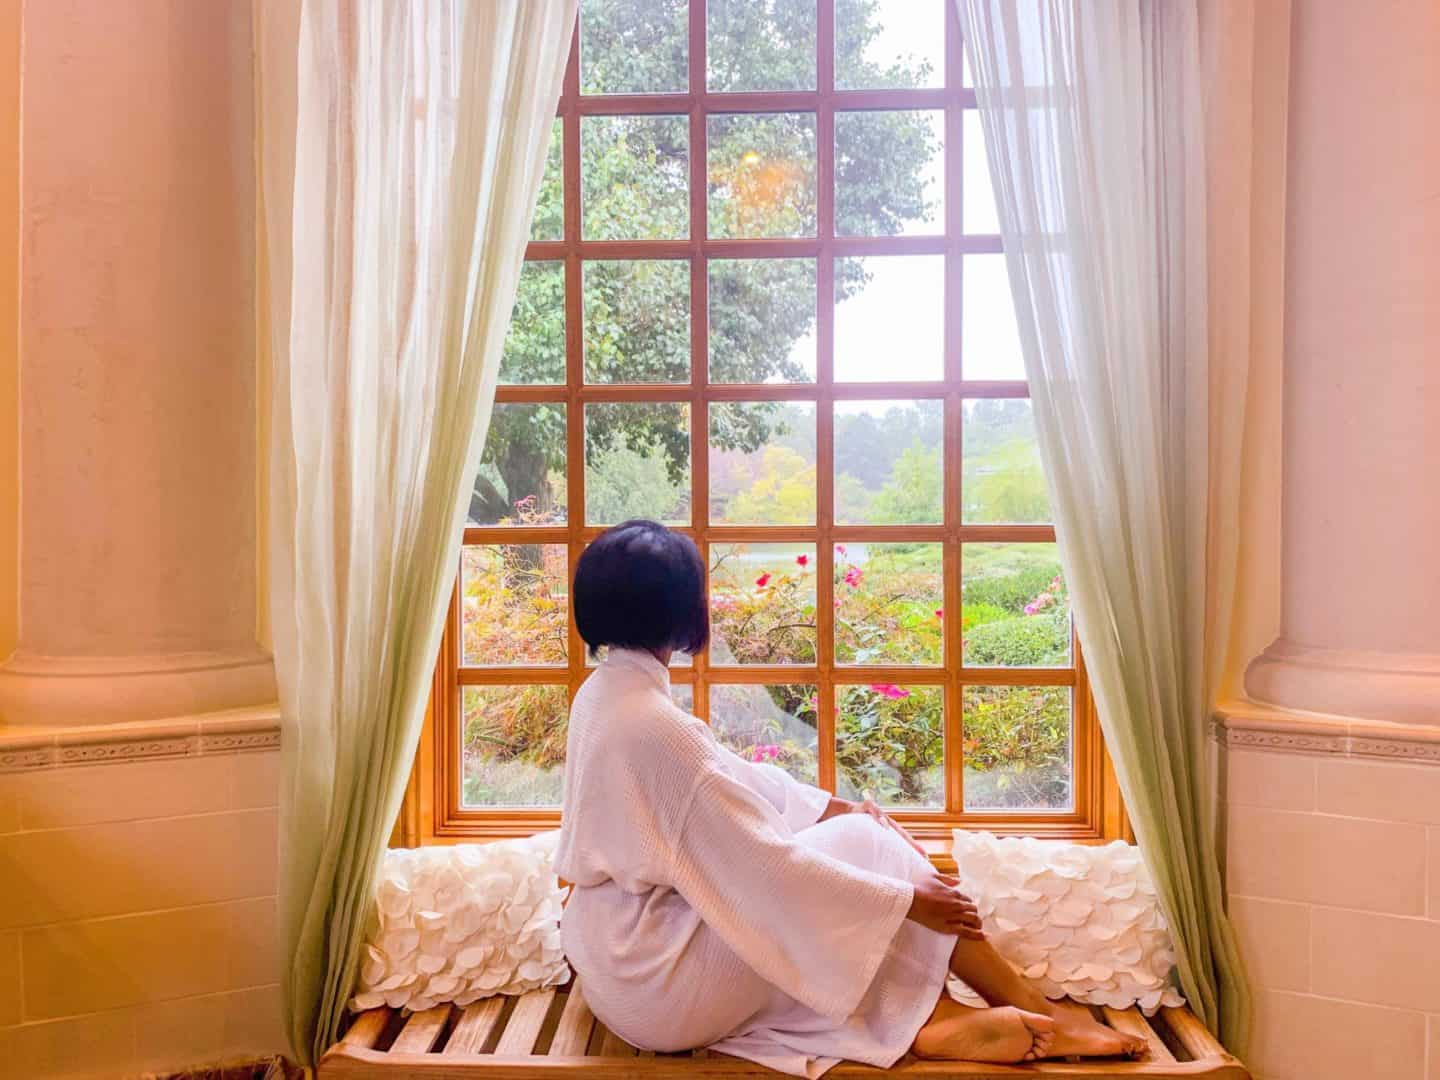 woman sitting in a window nook Fibroid removal surgery recovery time